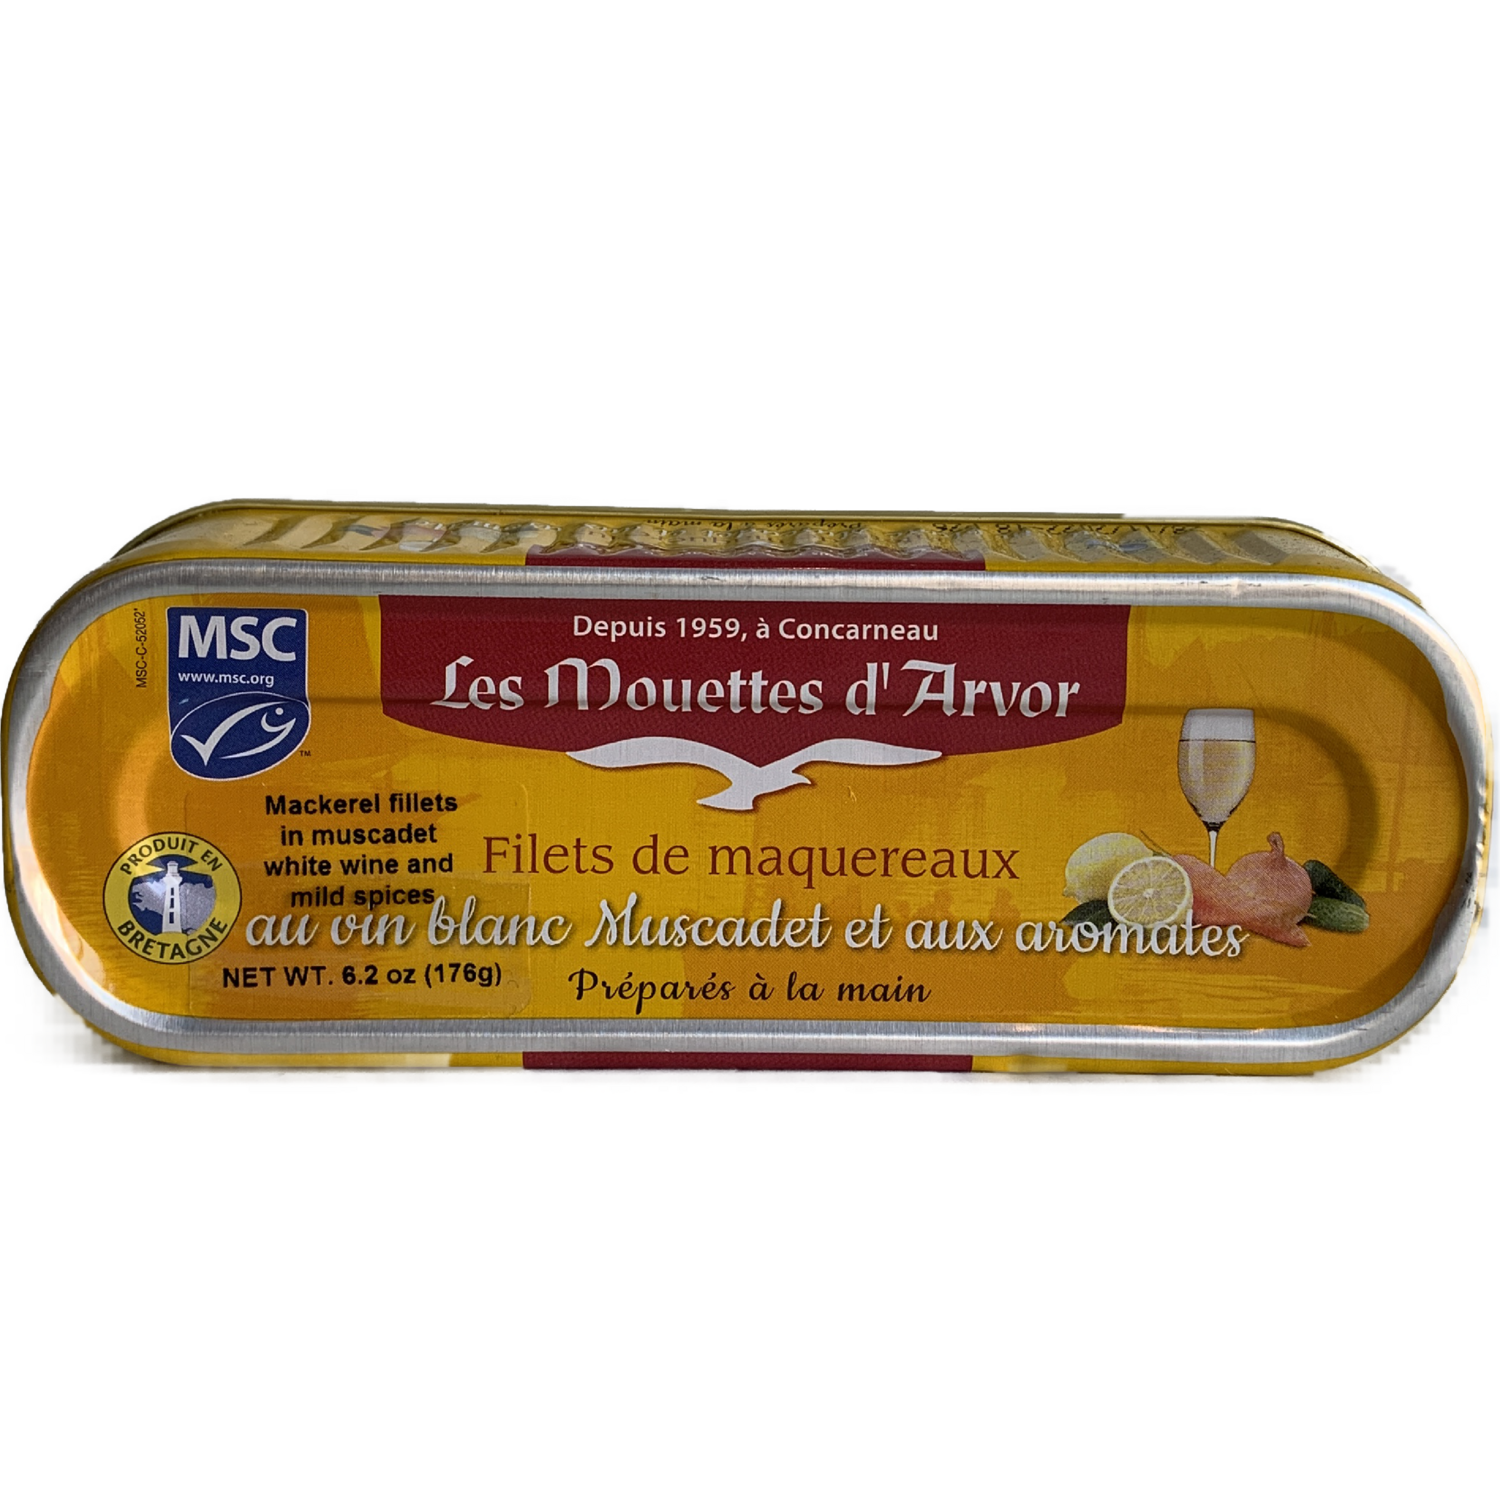 Mouettes D'Arvor Mackerel fillets /wine 6 oz.